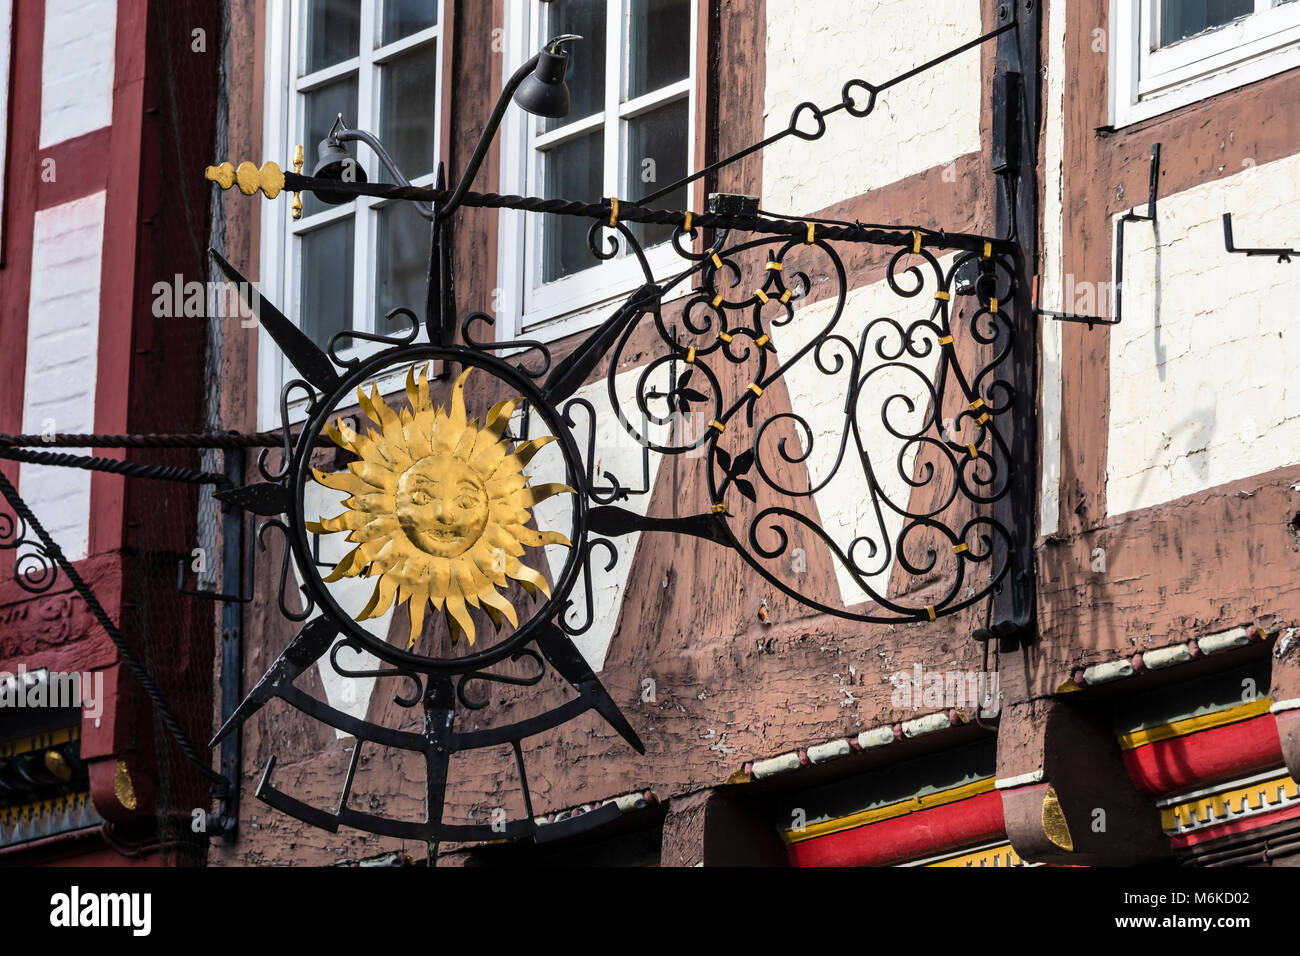 metal shop sign, historical center of Celle, half-timbered house in street 'Schuhstrasse', Celle, Lower Saxony, Stock Photo